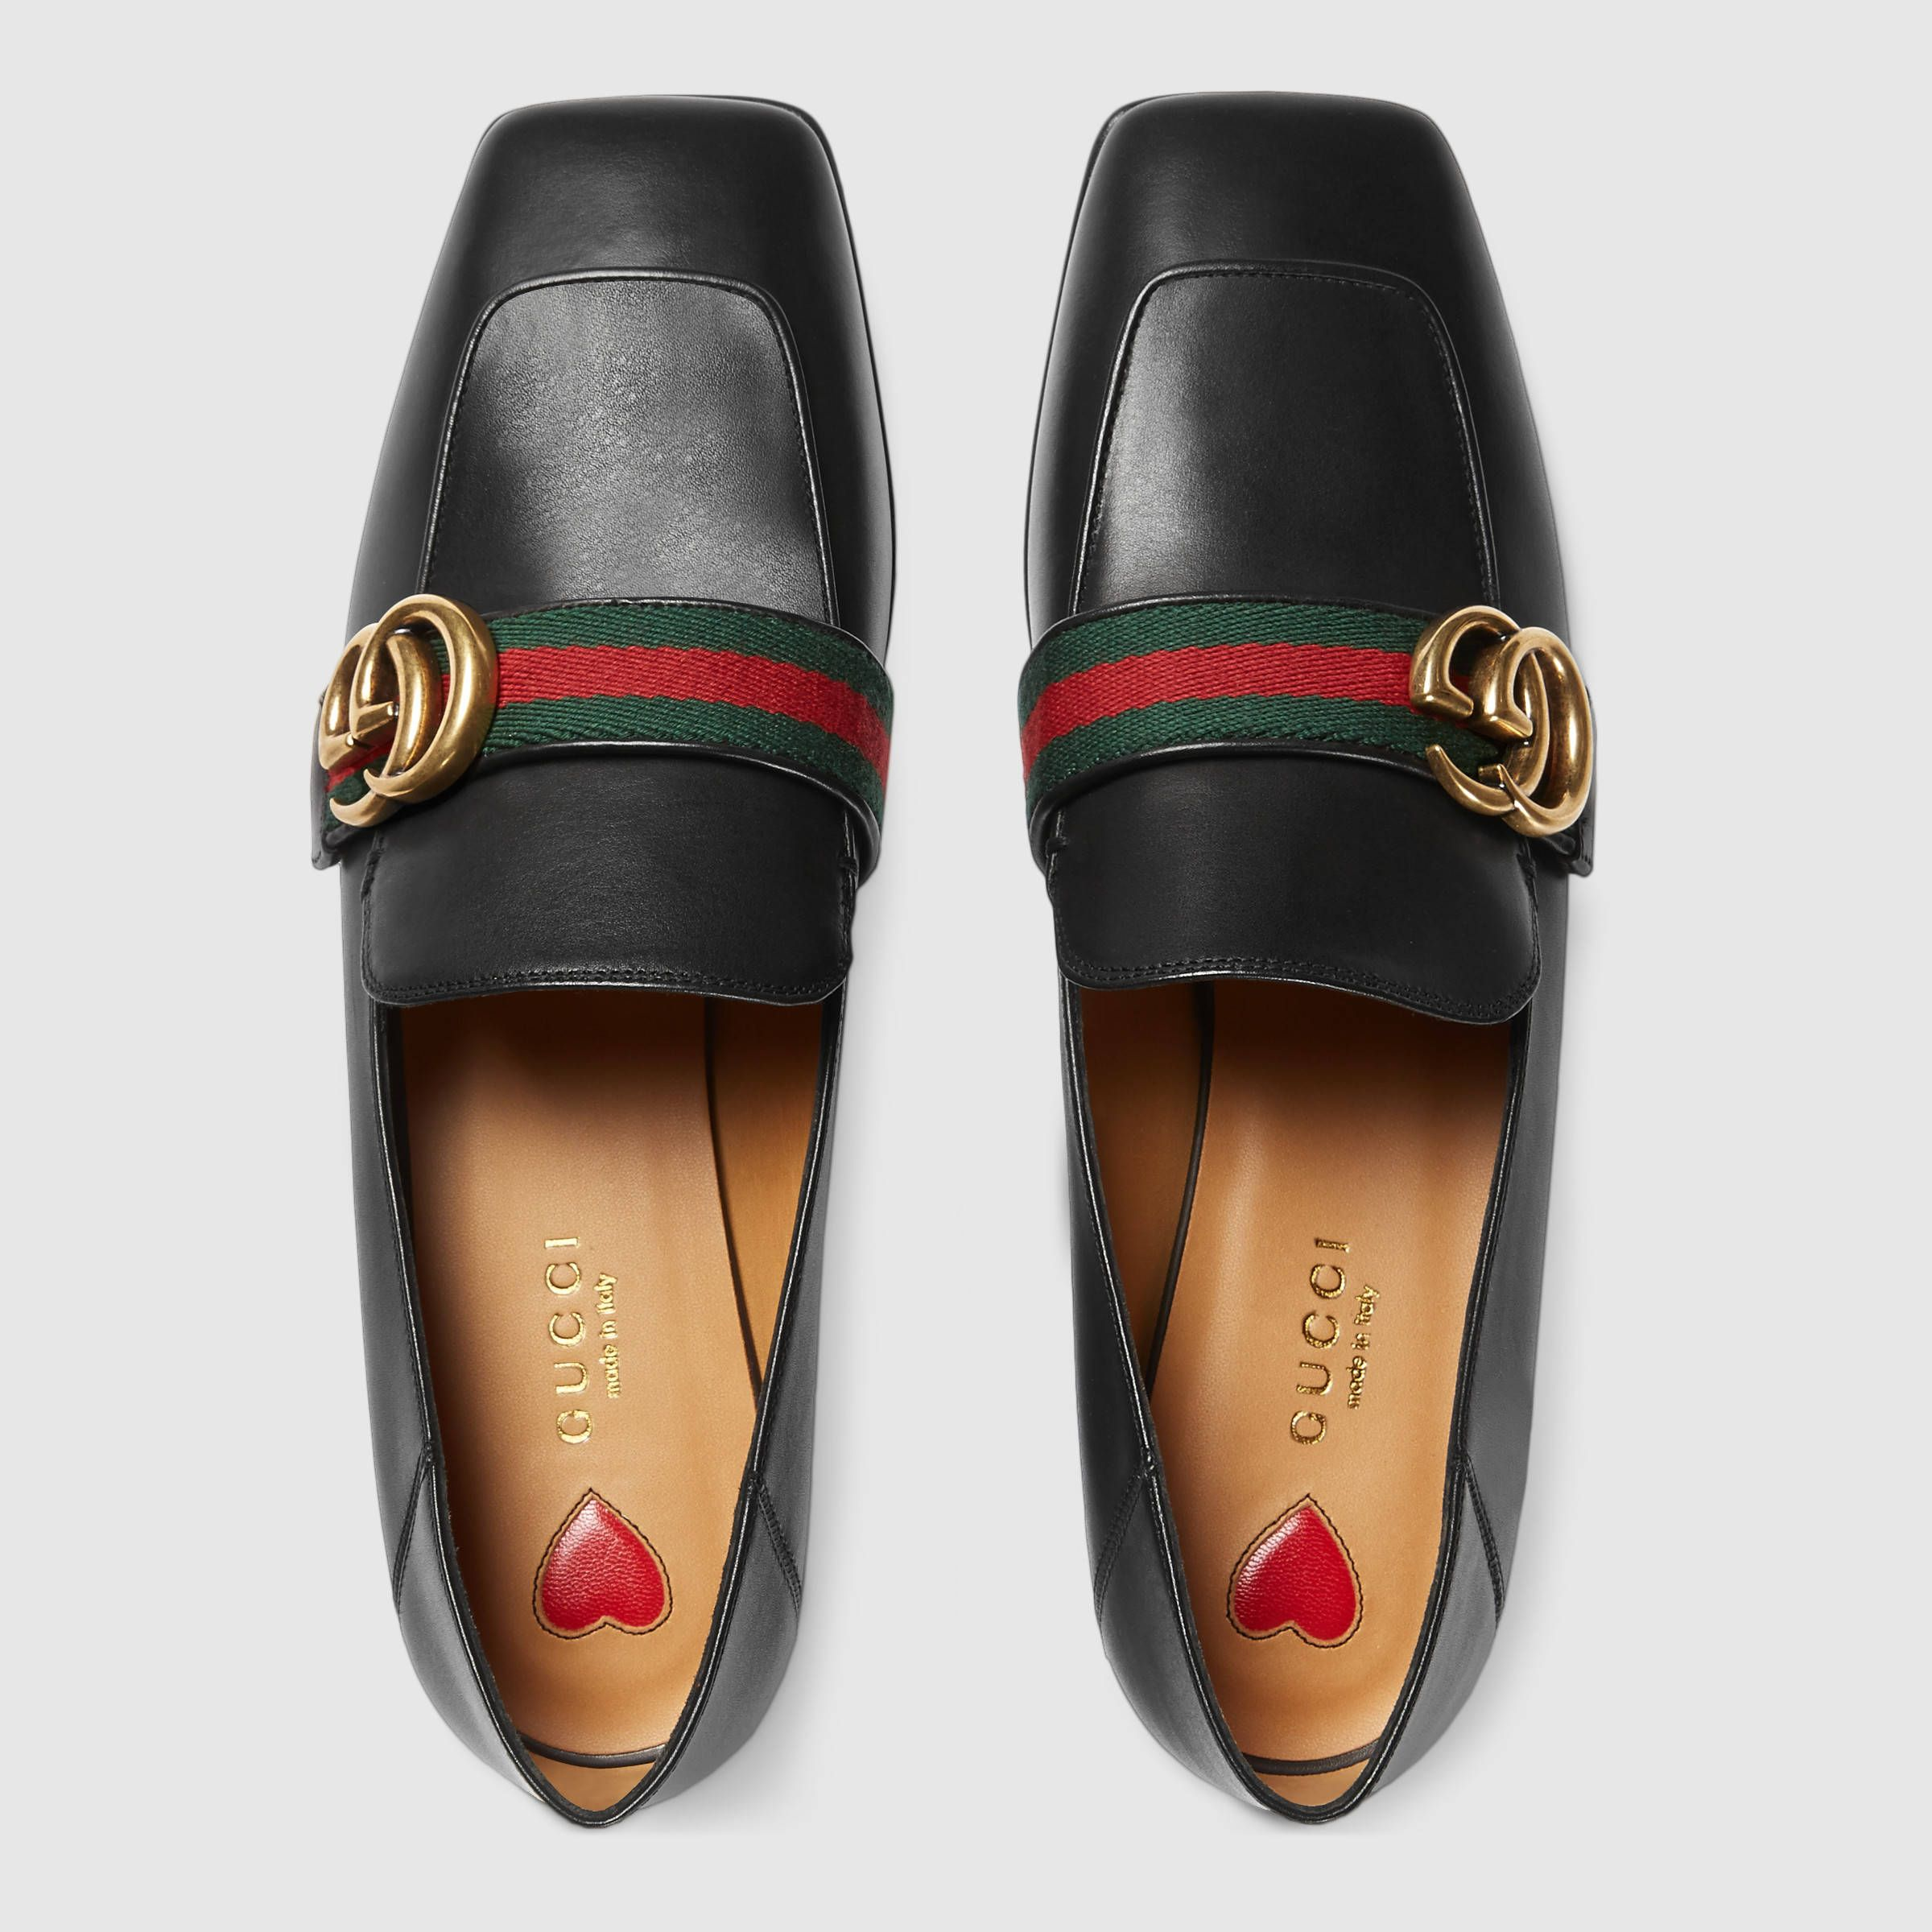 Gucci Leather Double G loafer $795